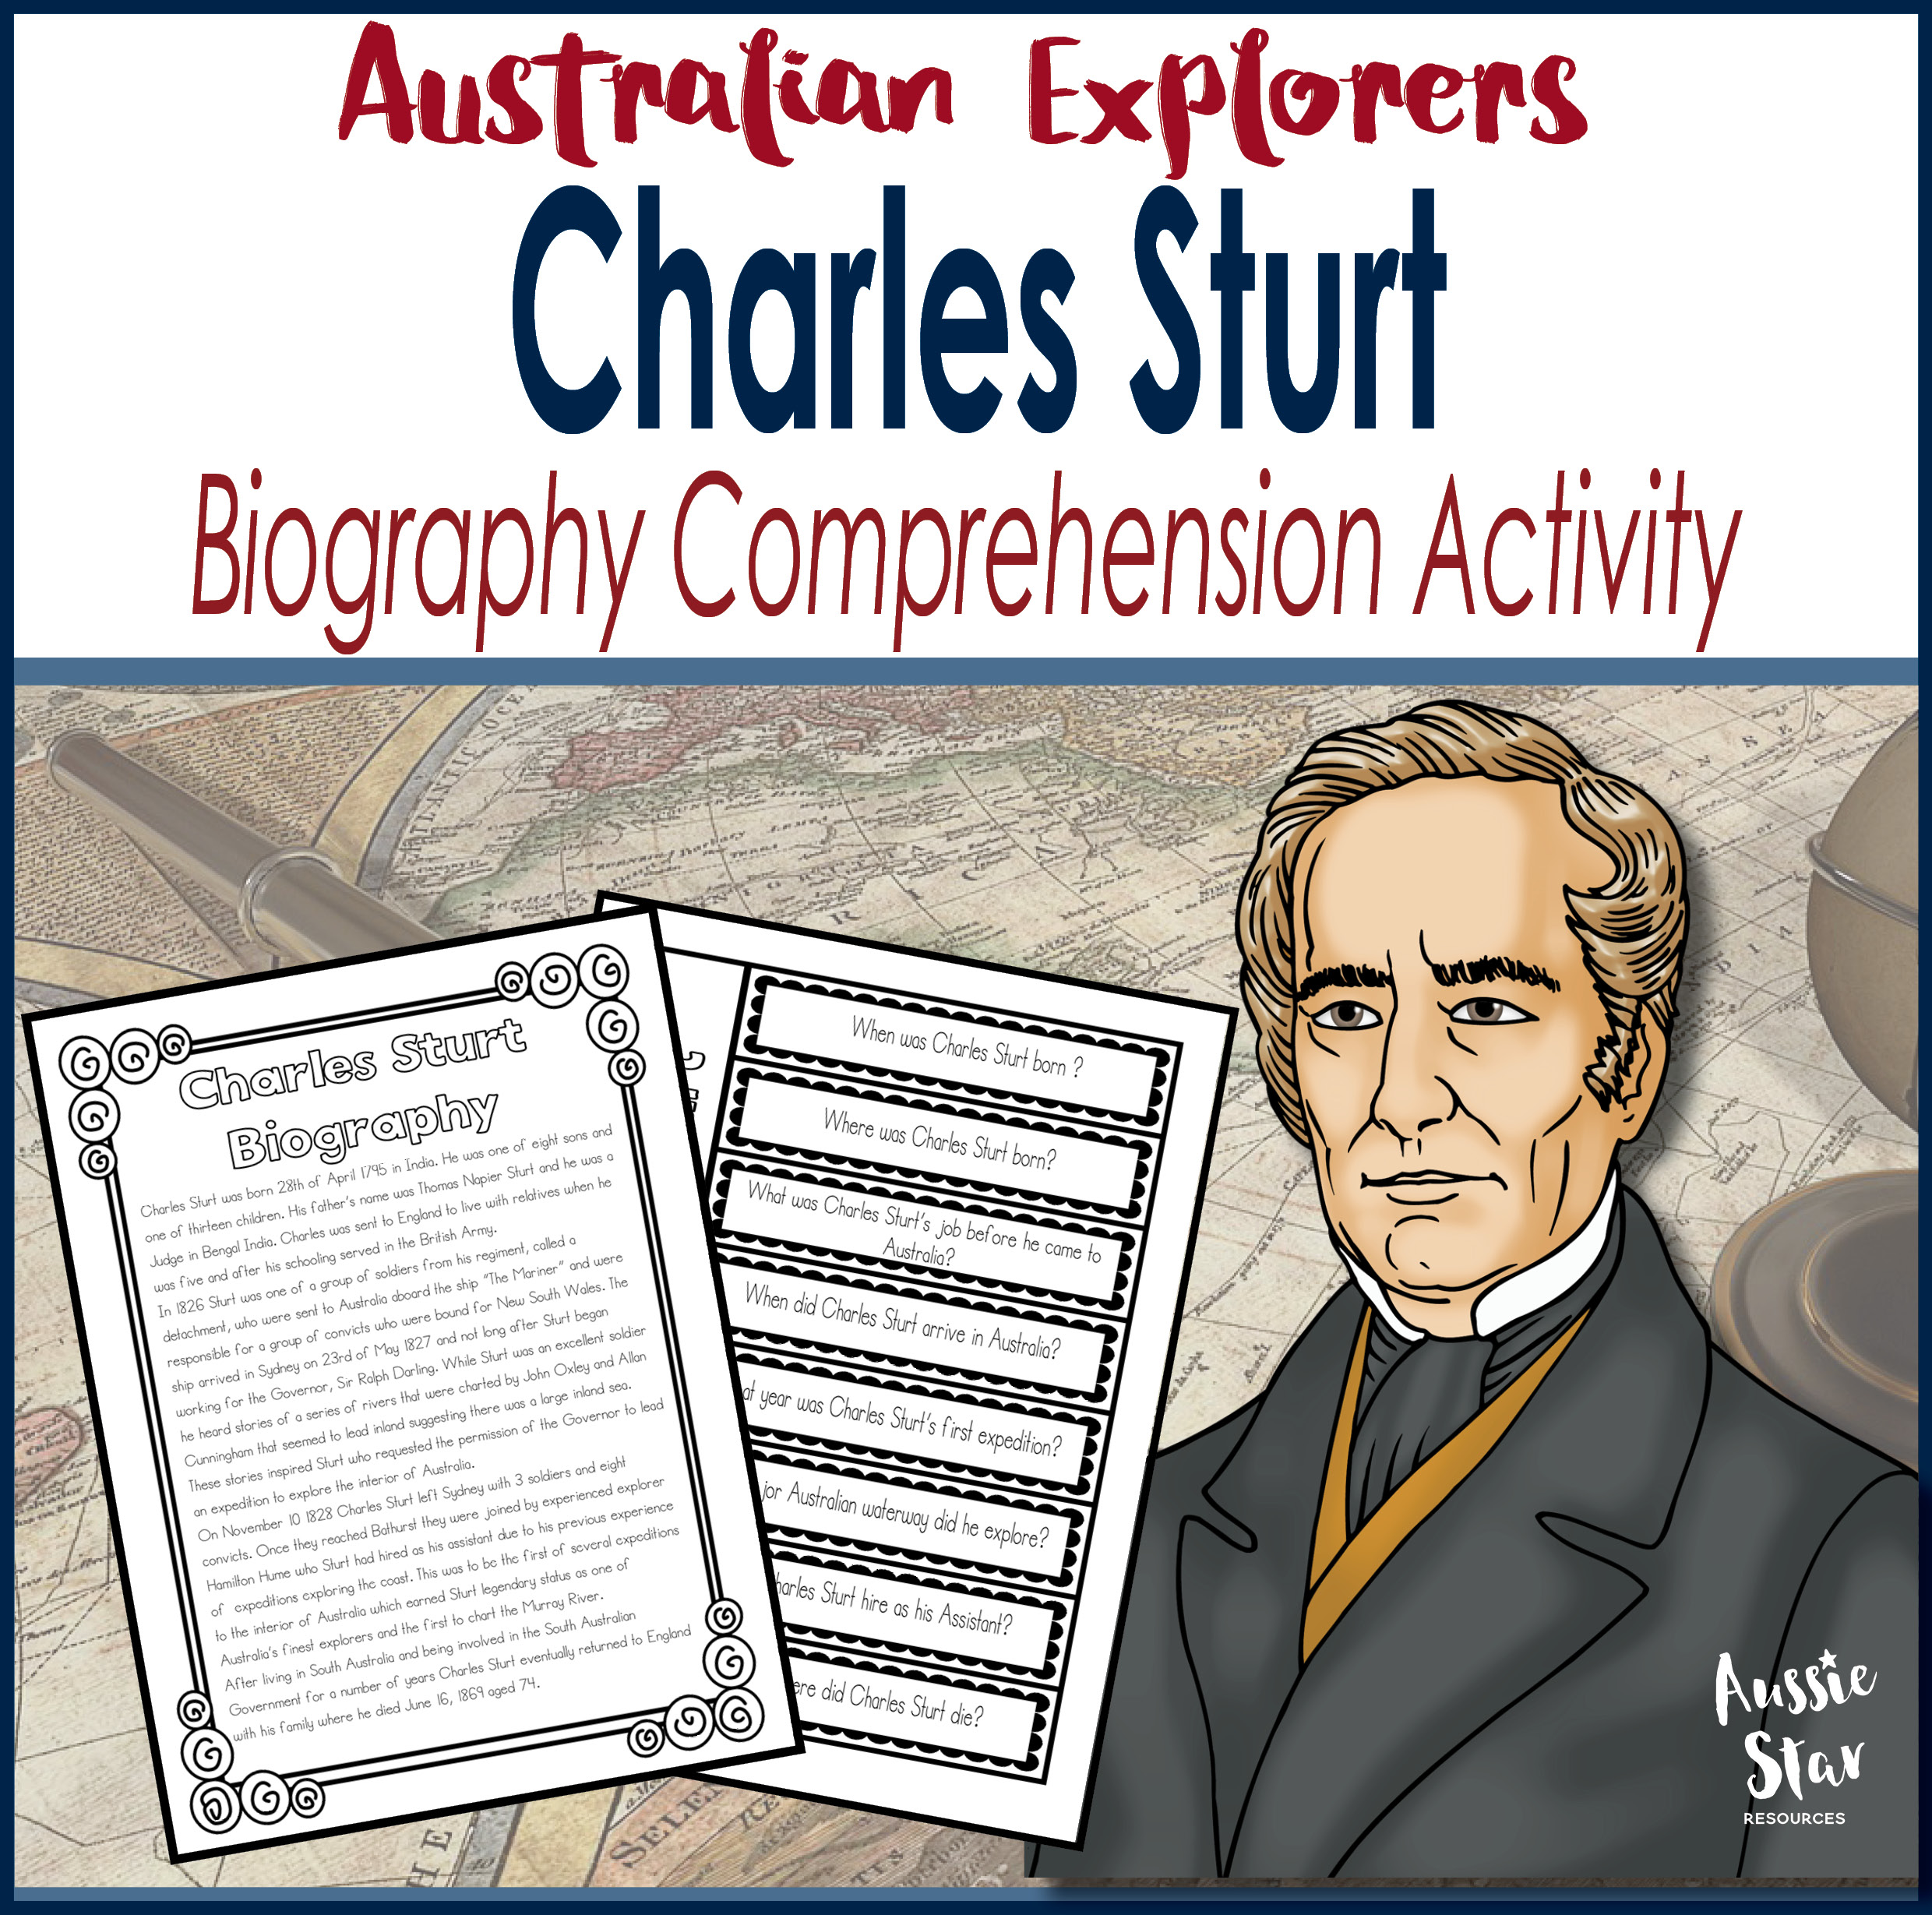 Charles Sturt Biography Comprehension Activity